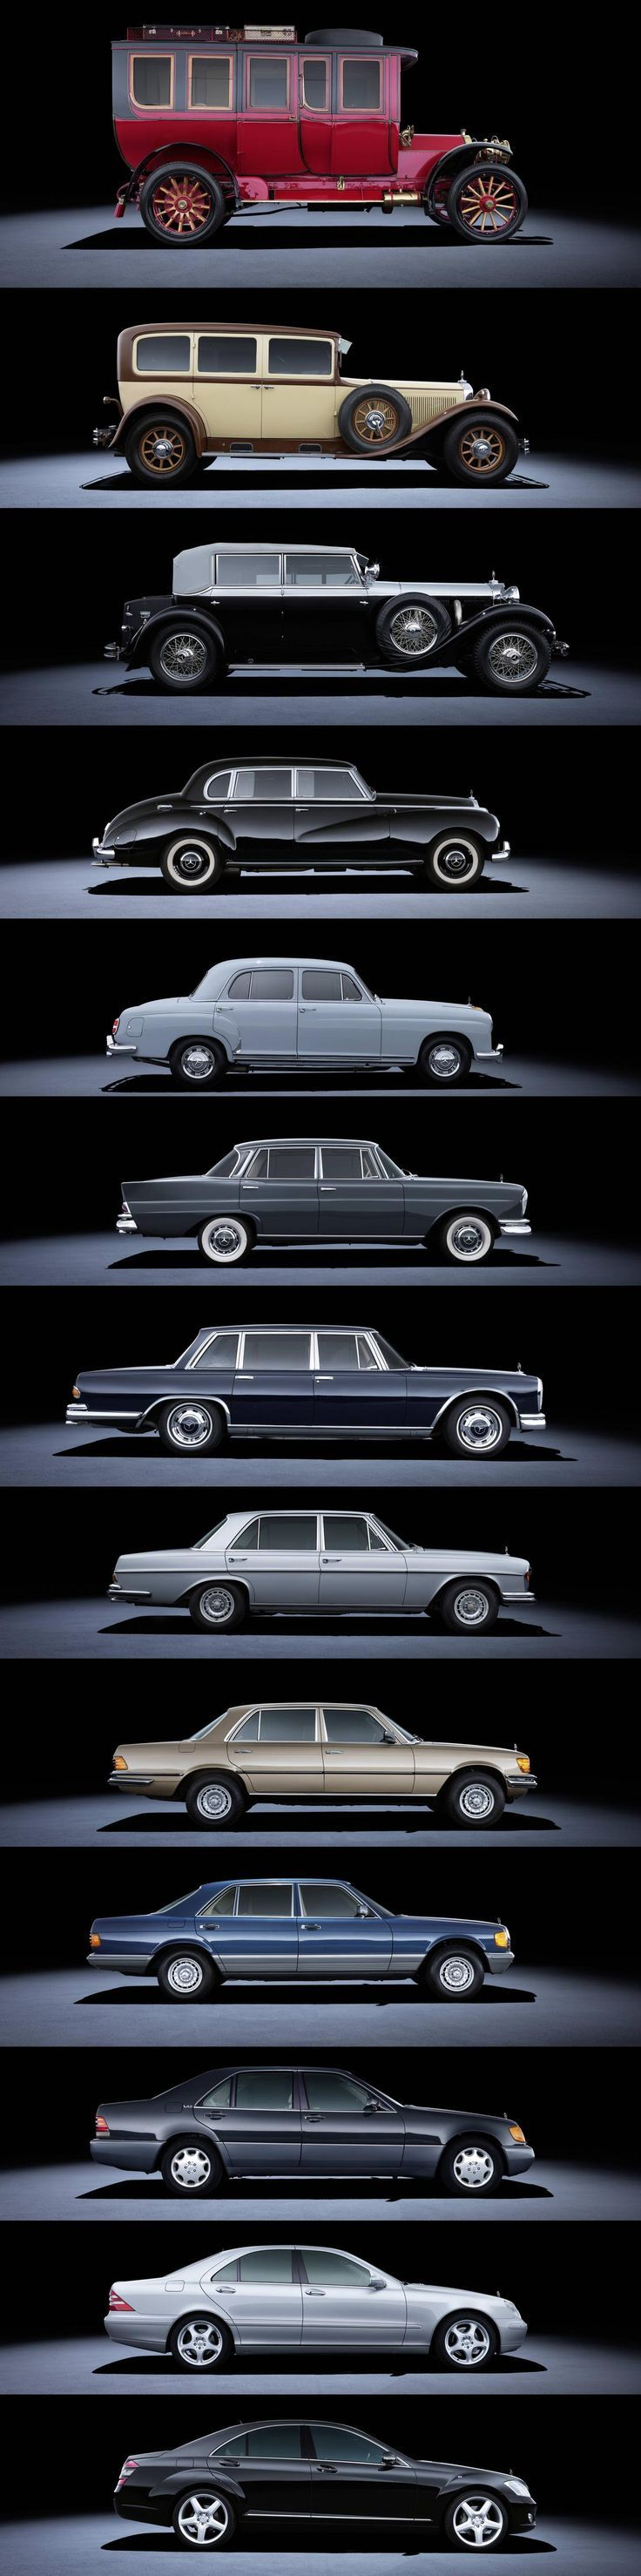 The evolution of the Mercedes Class S. What do you think will be next?